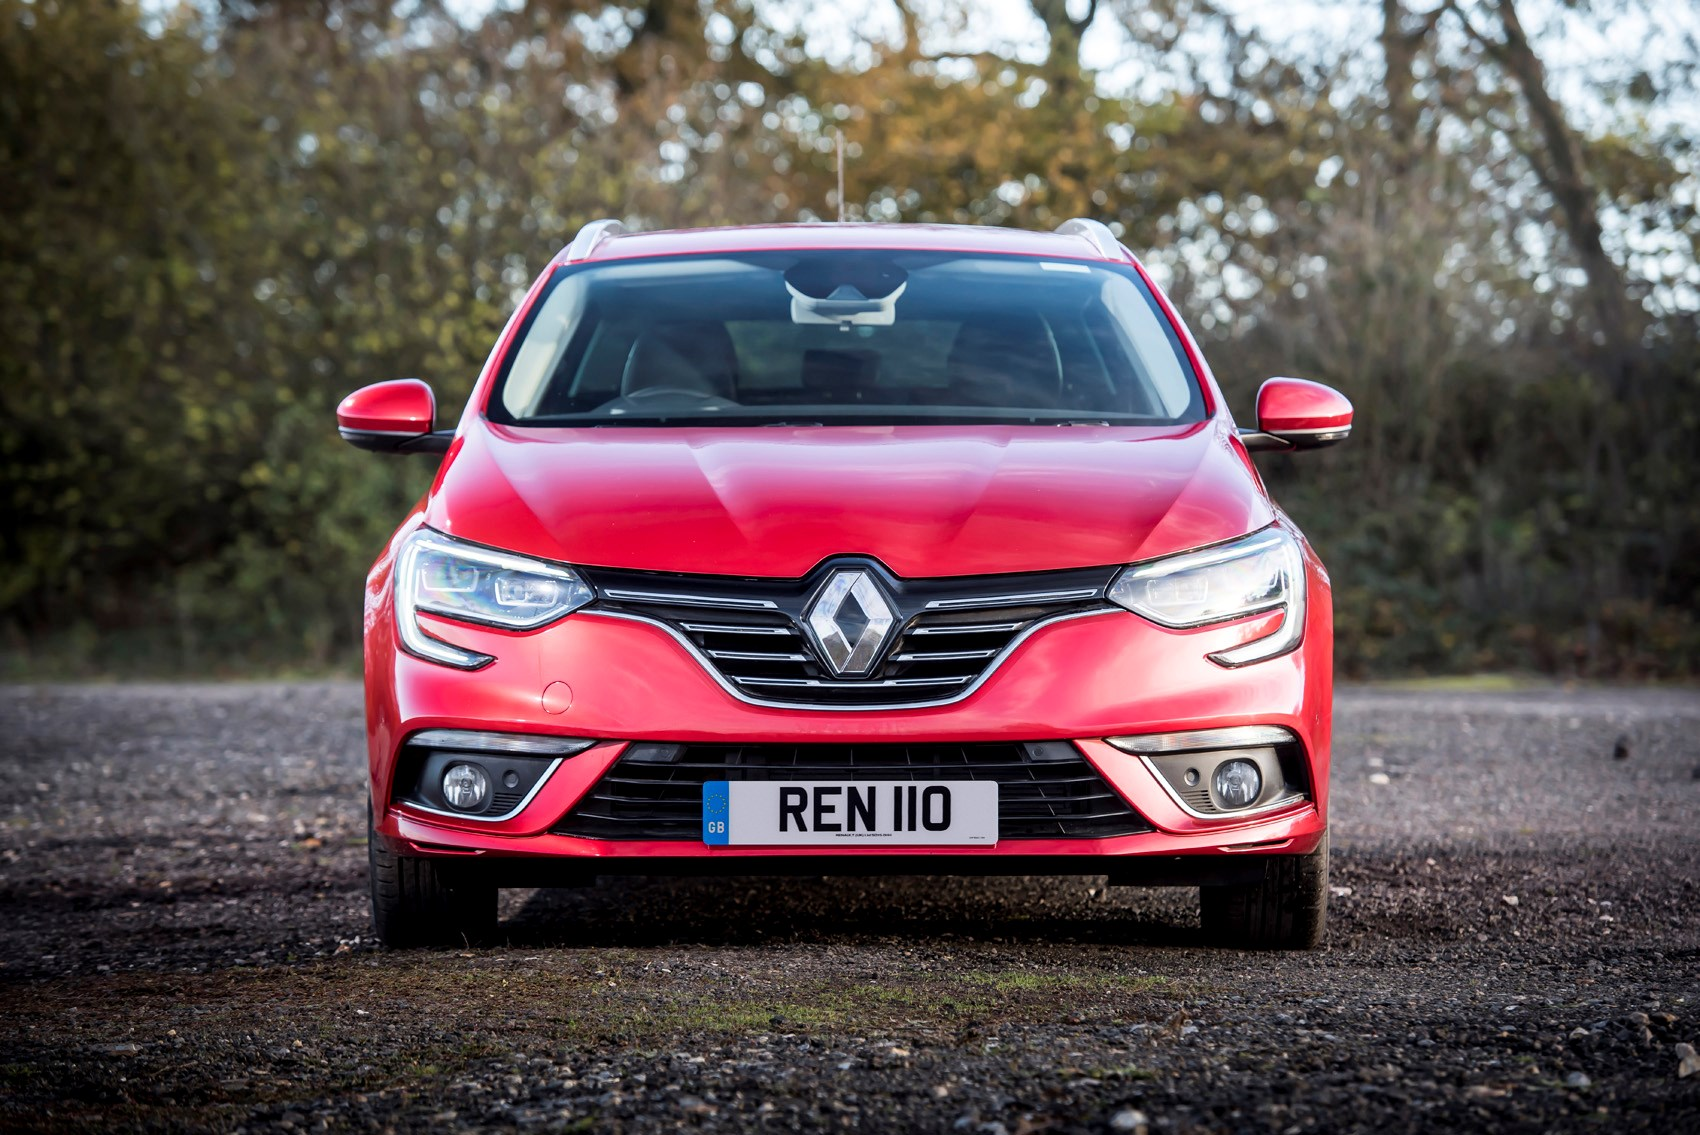 Renault Megane Sport Tourer (2019) Practicality & Boot Space